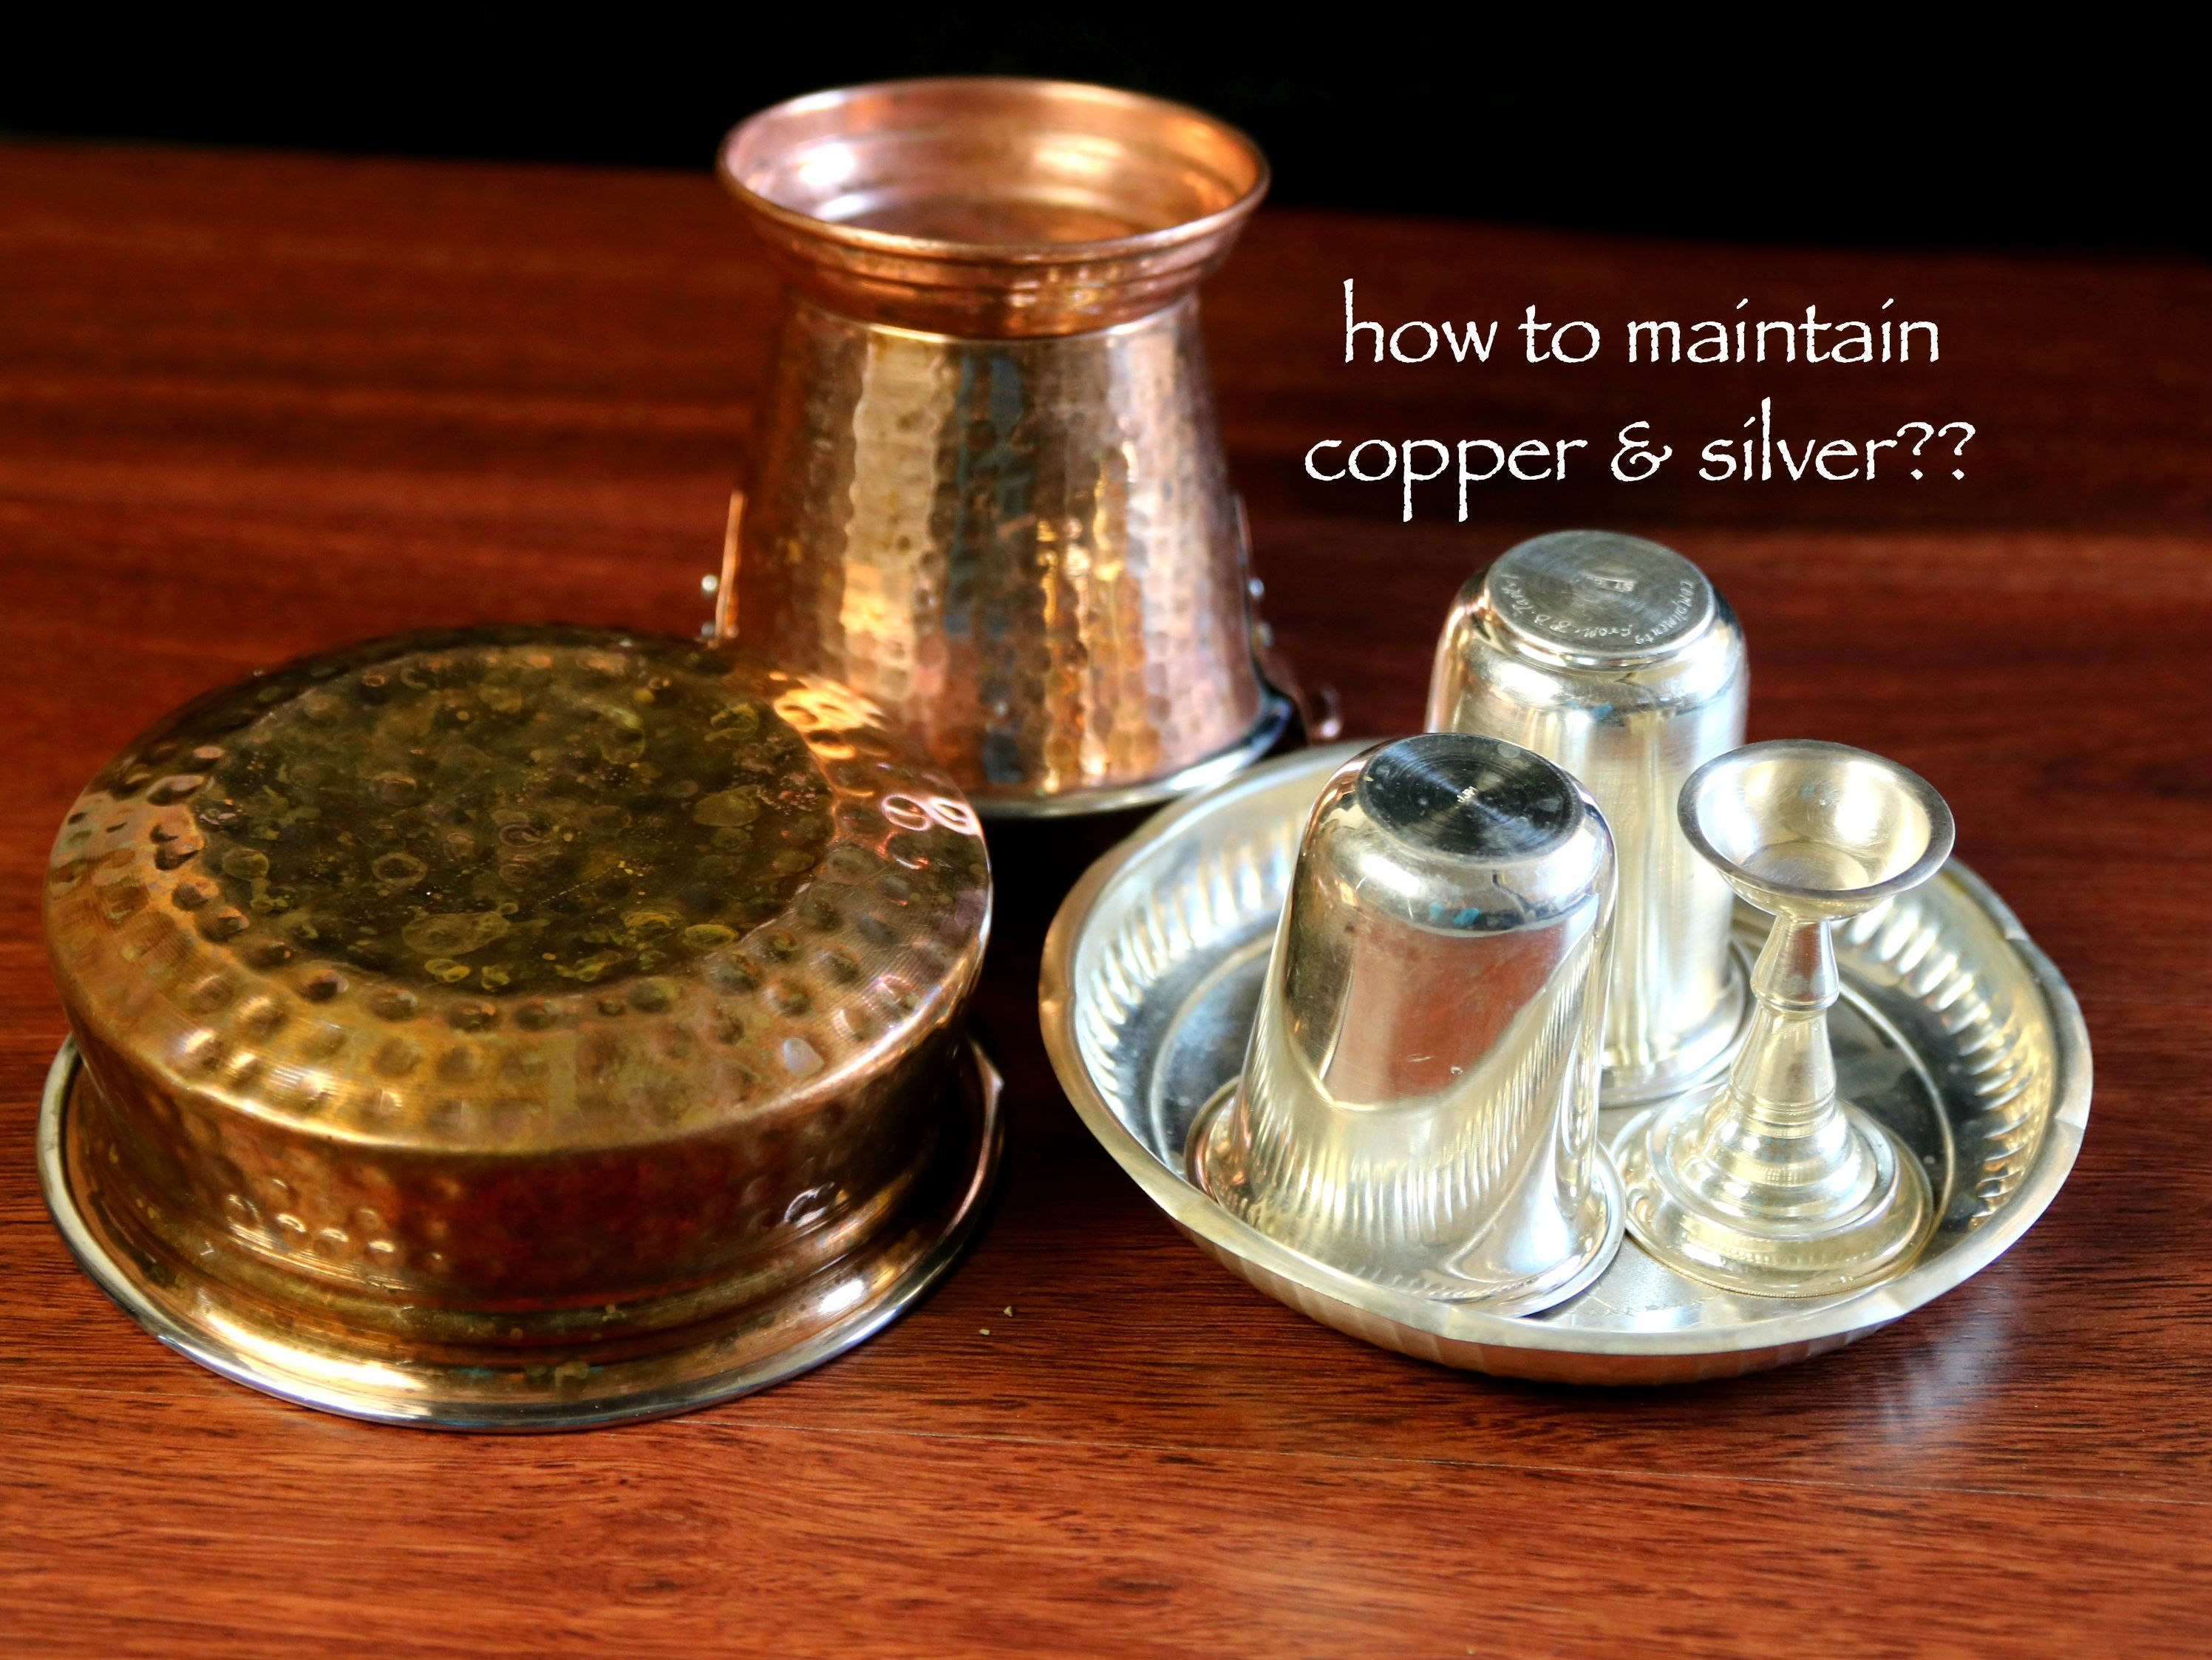 Top 5 Tips To Maintain And Clean Silver Copper Vessels With Photos Easy